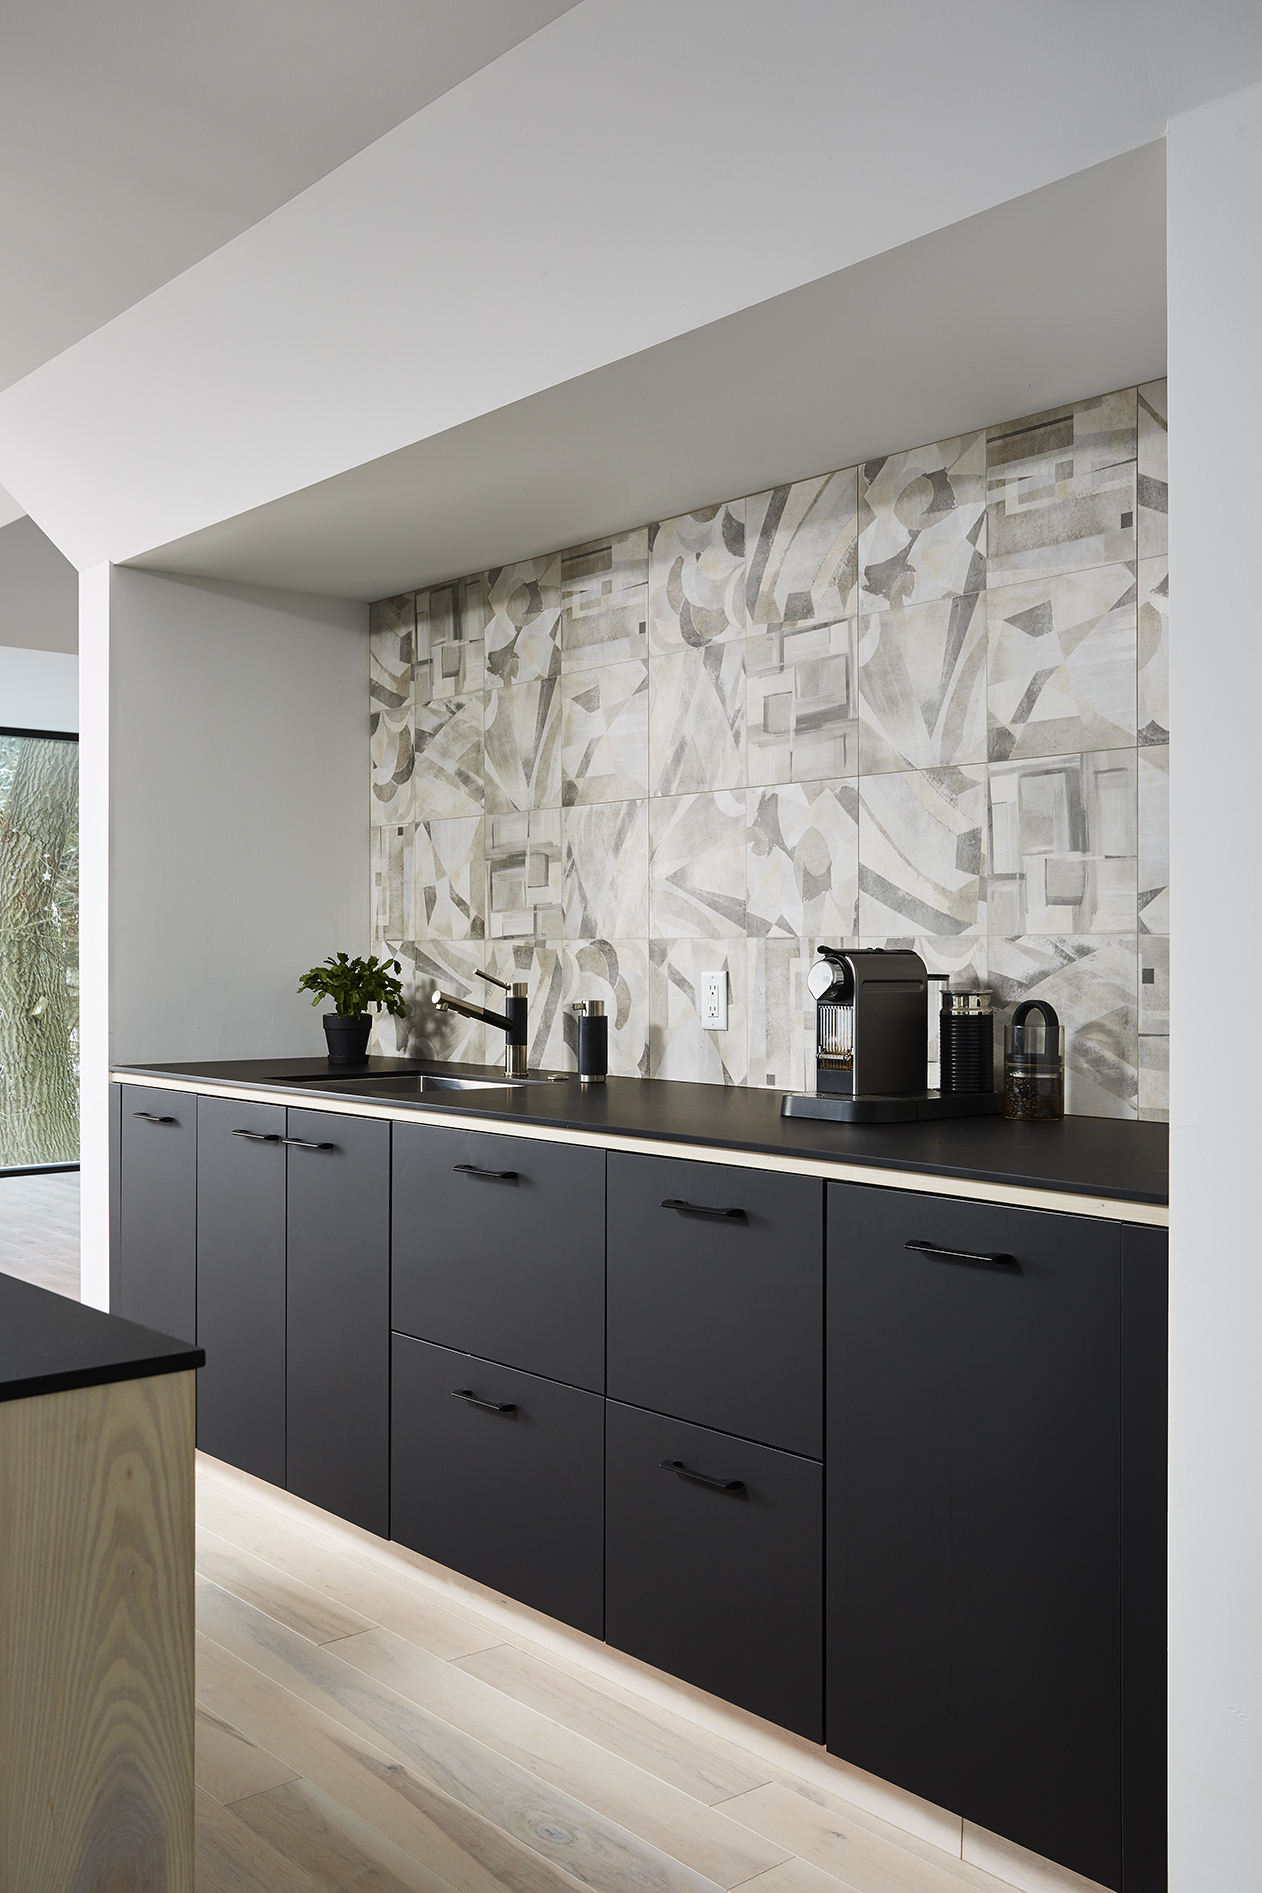 Recessed kitchen working area with graphic tile backsplash